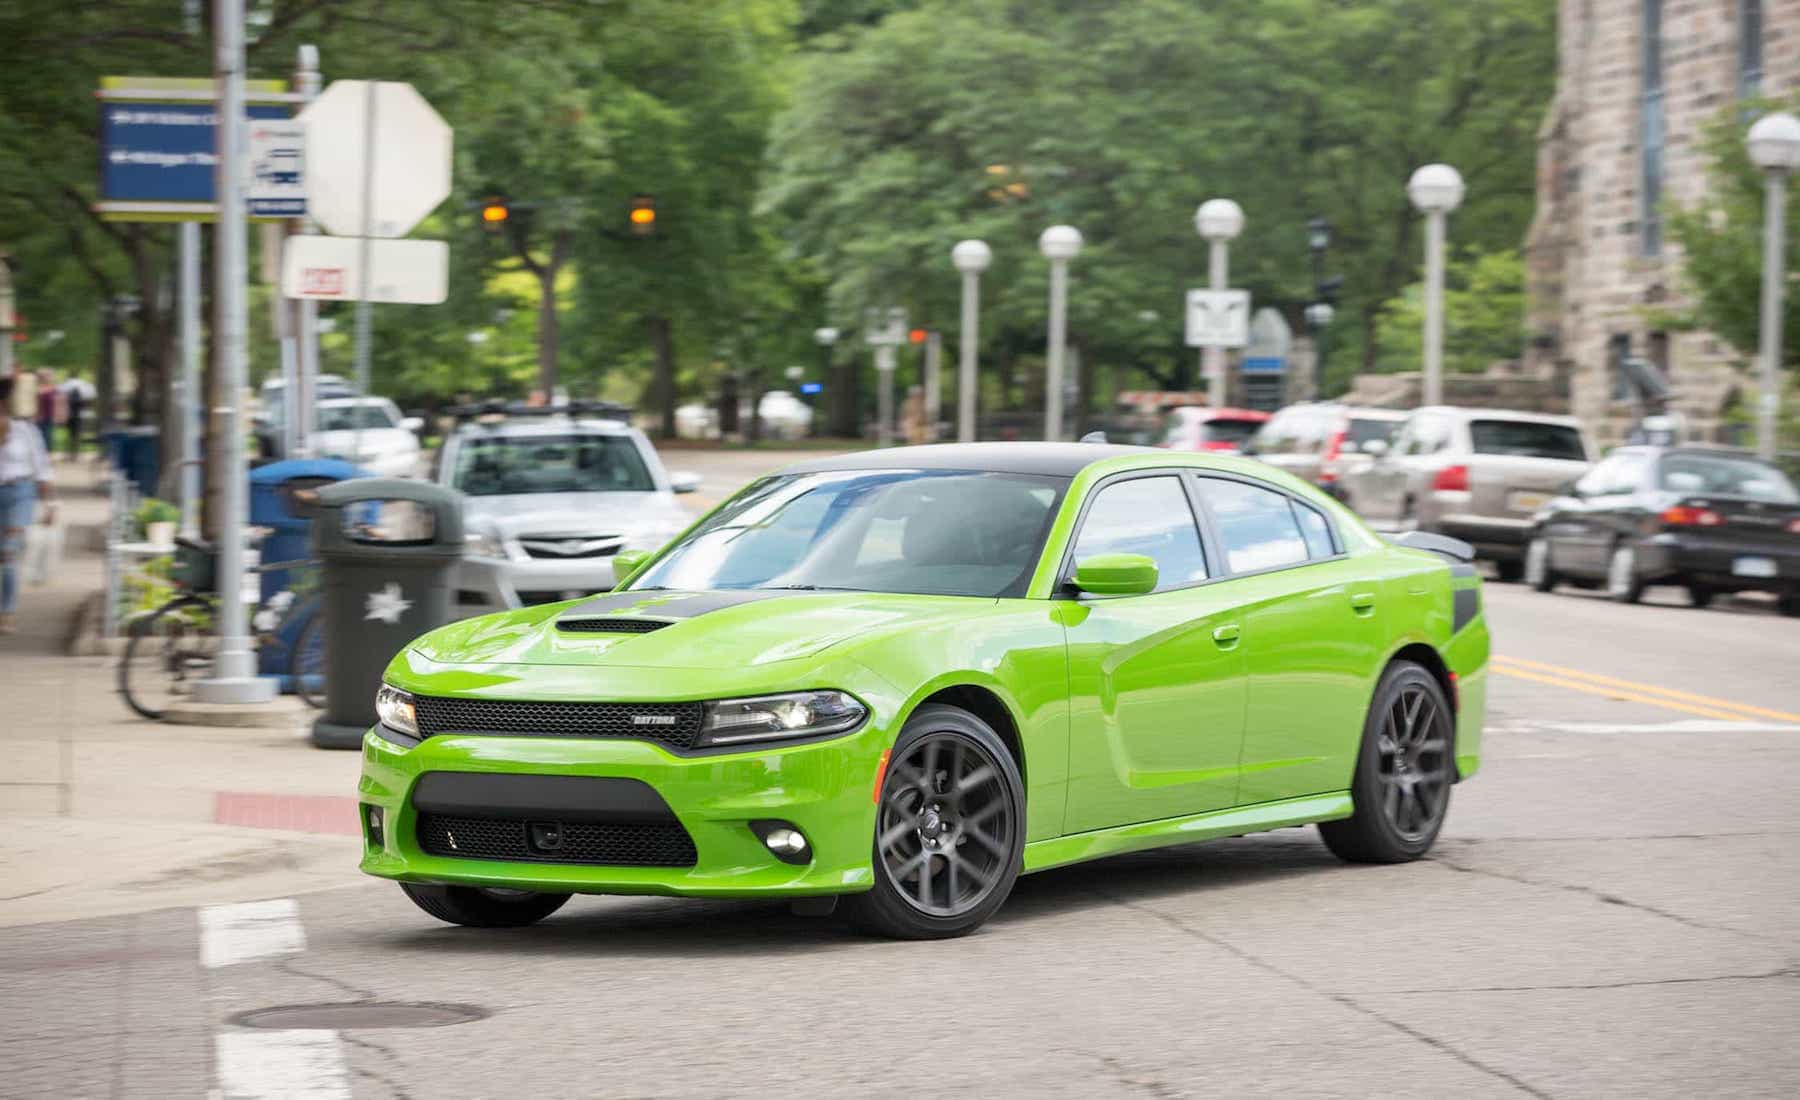 2017 Dodge Charger Daytona 5.7L V8 Green Metallic (Photo 27 of 38)